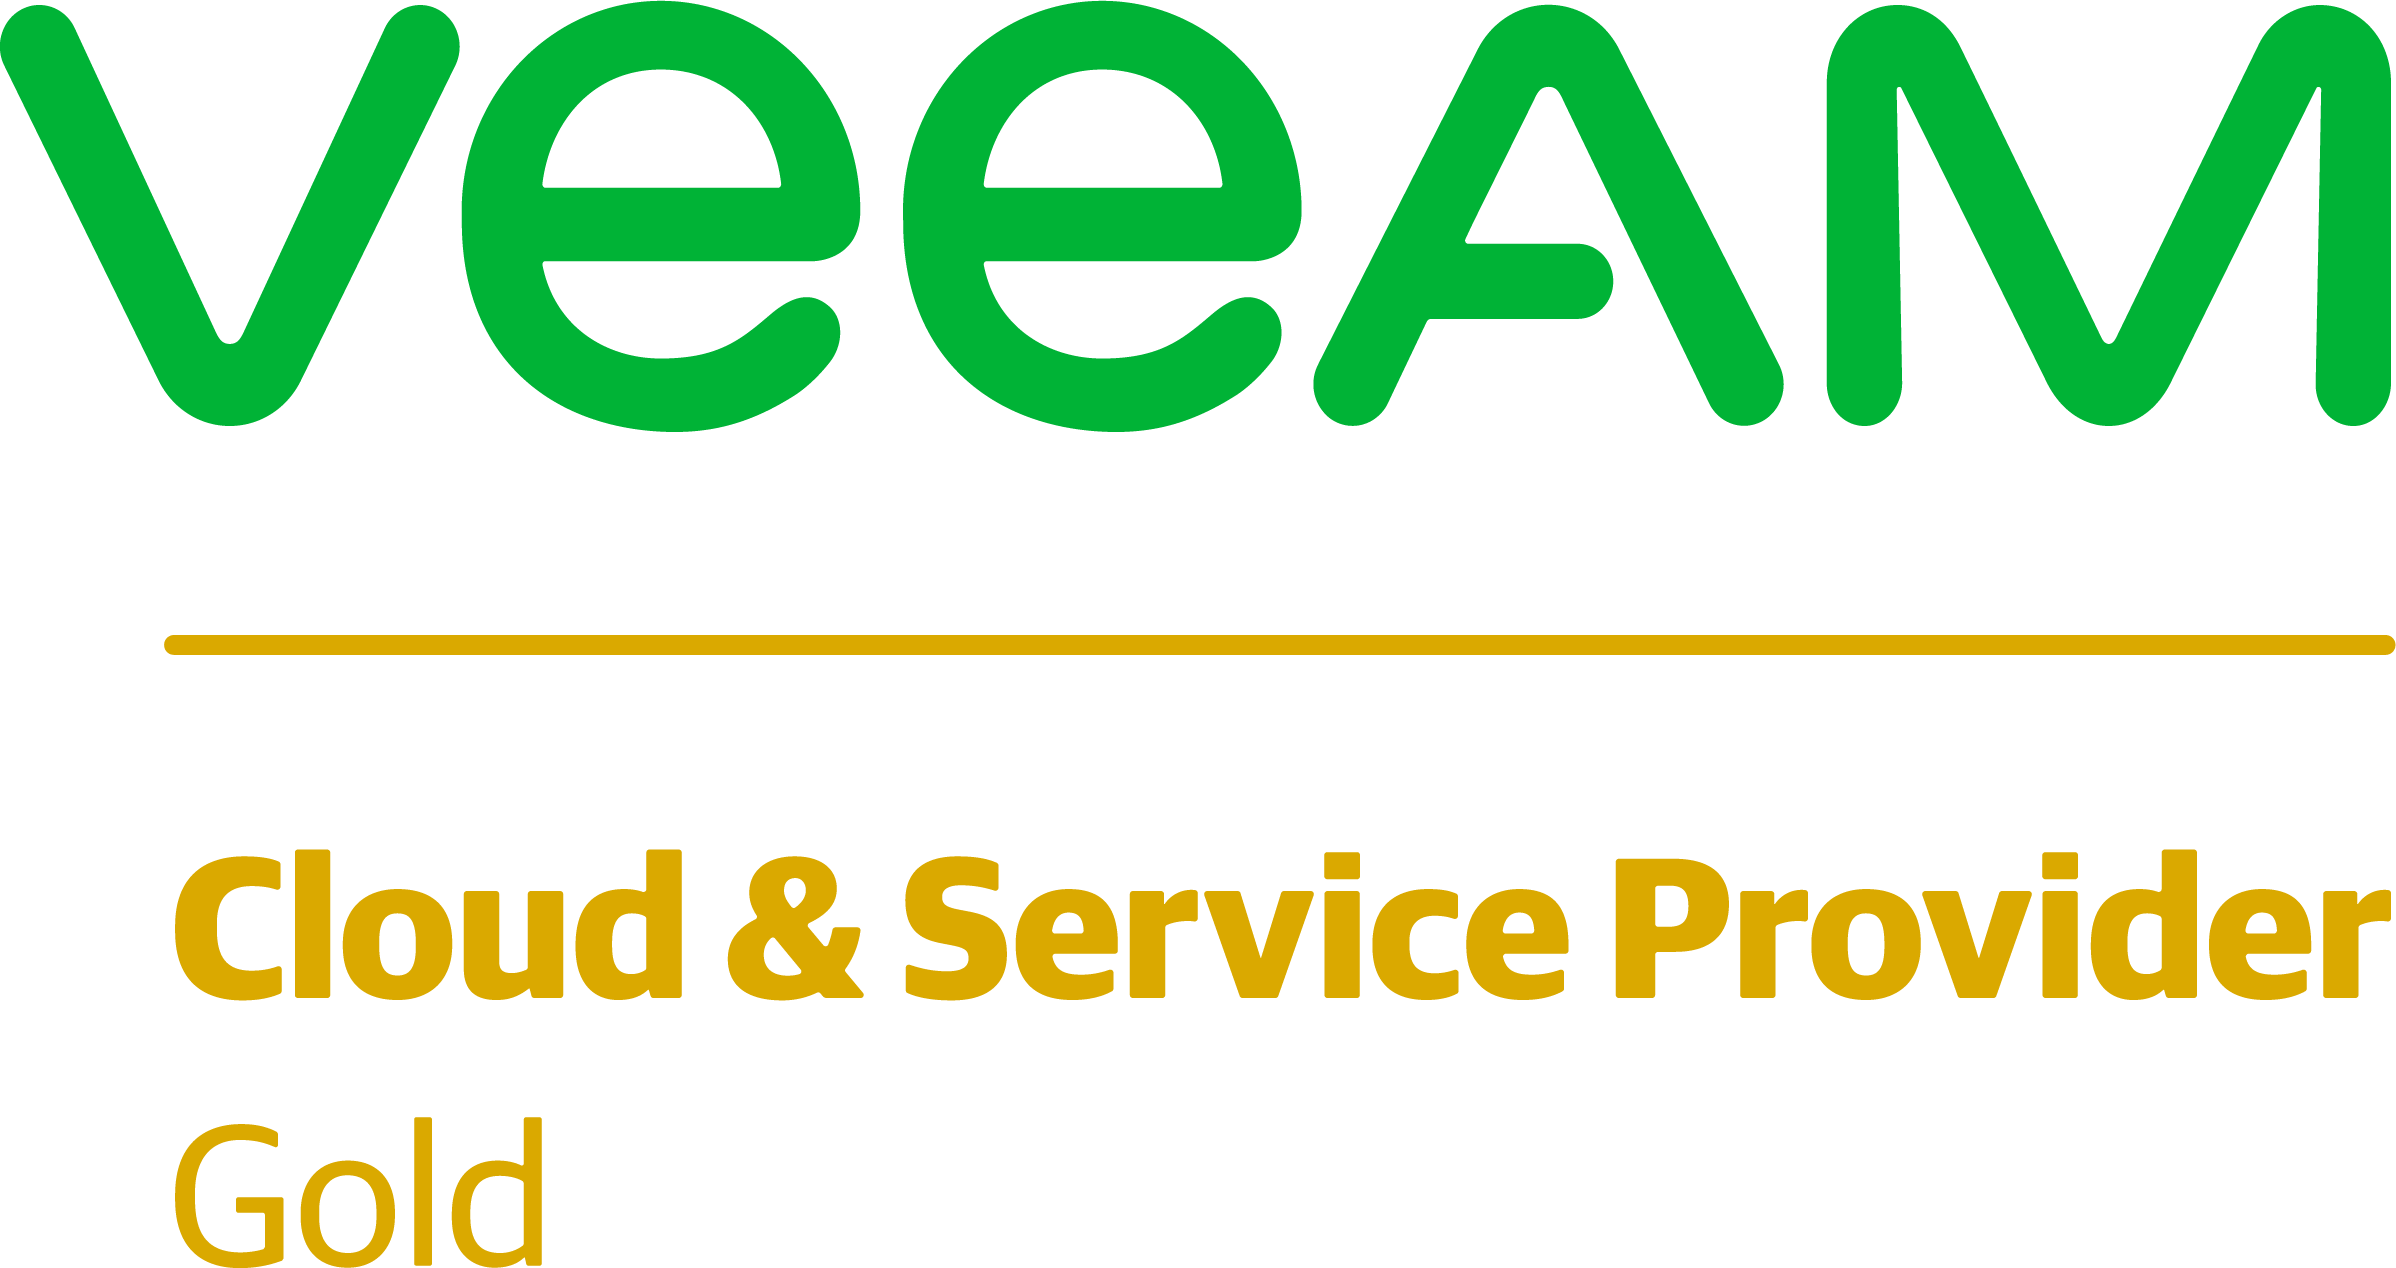 DSM Announces New VCSP Gold Status with Veeam® - Featured Image